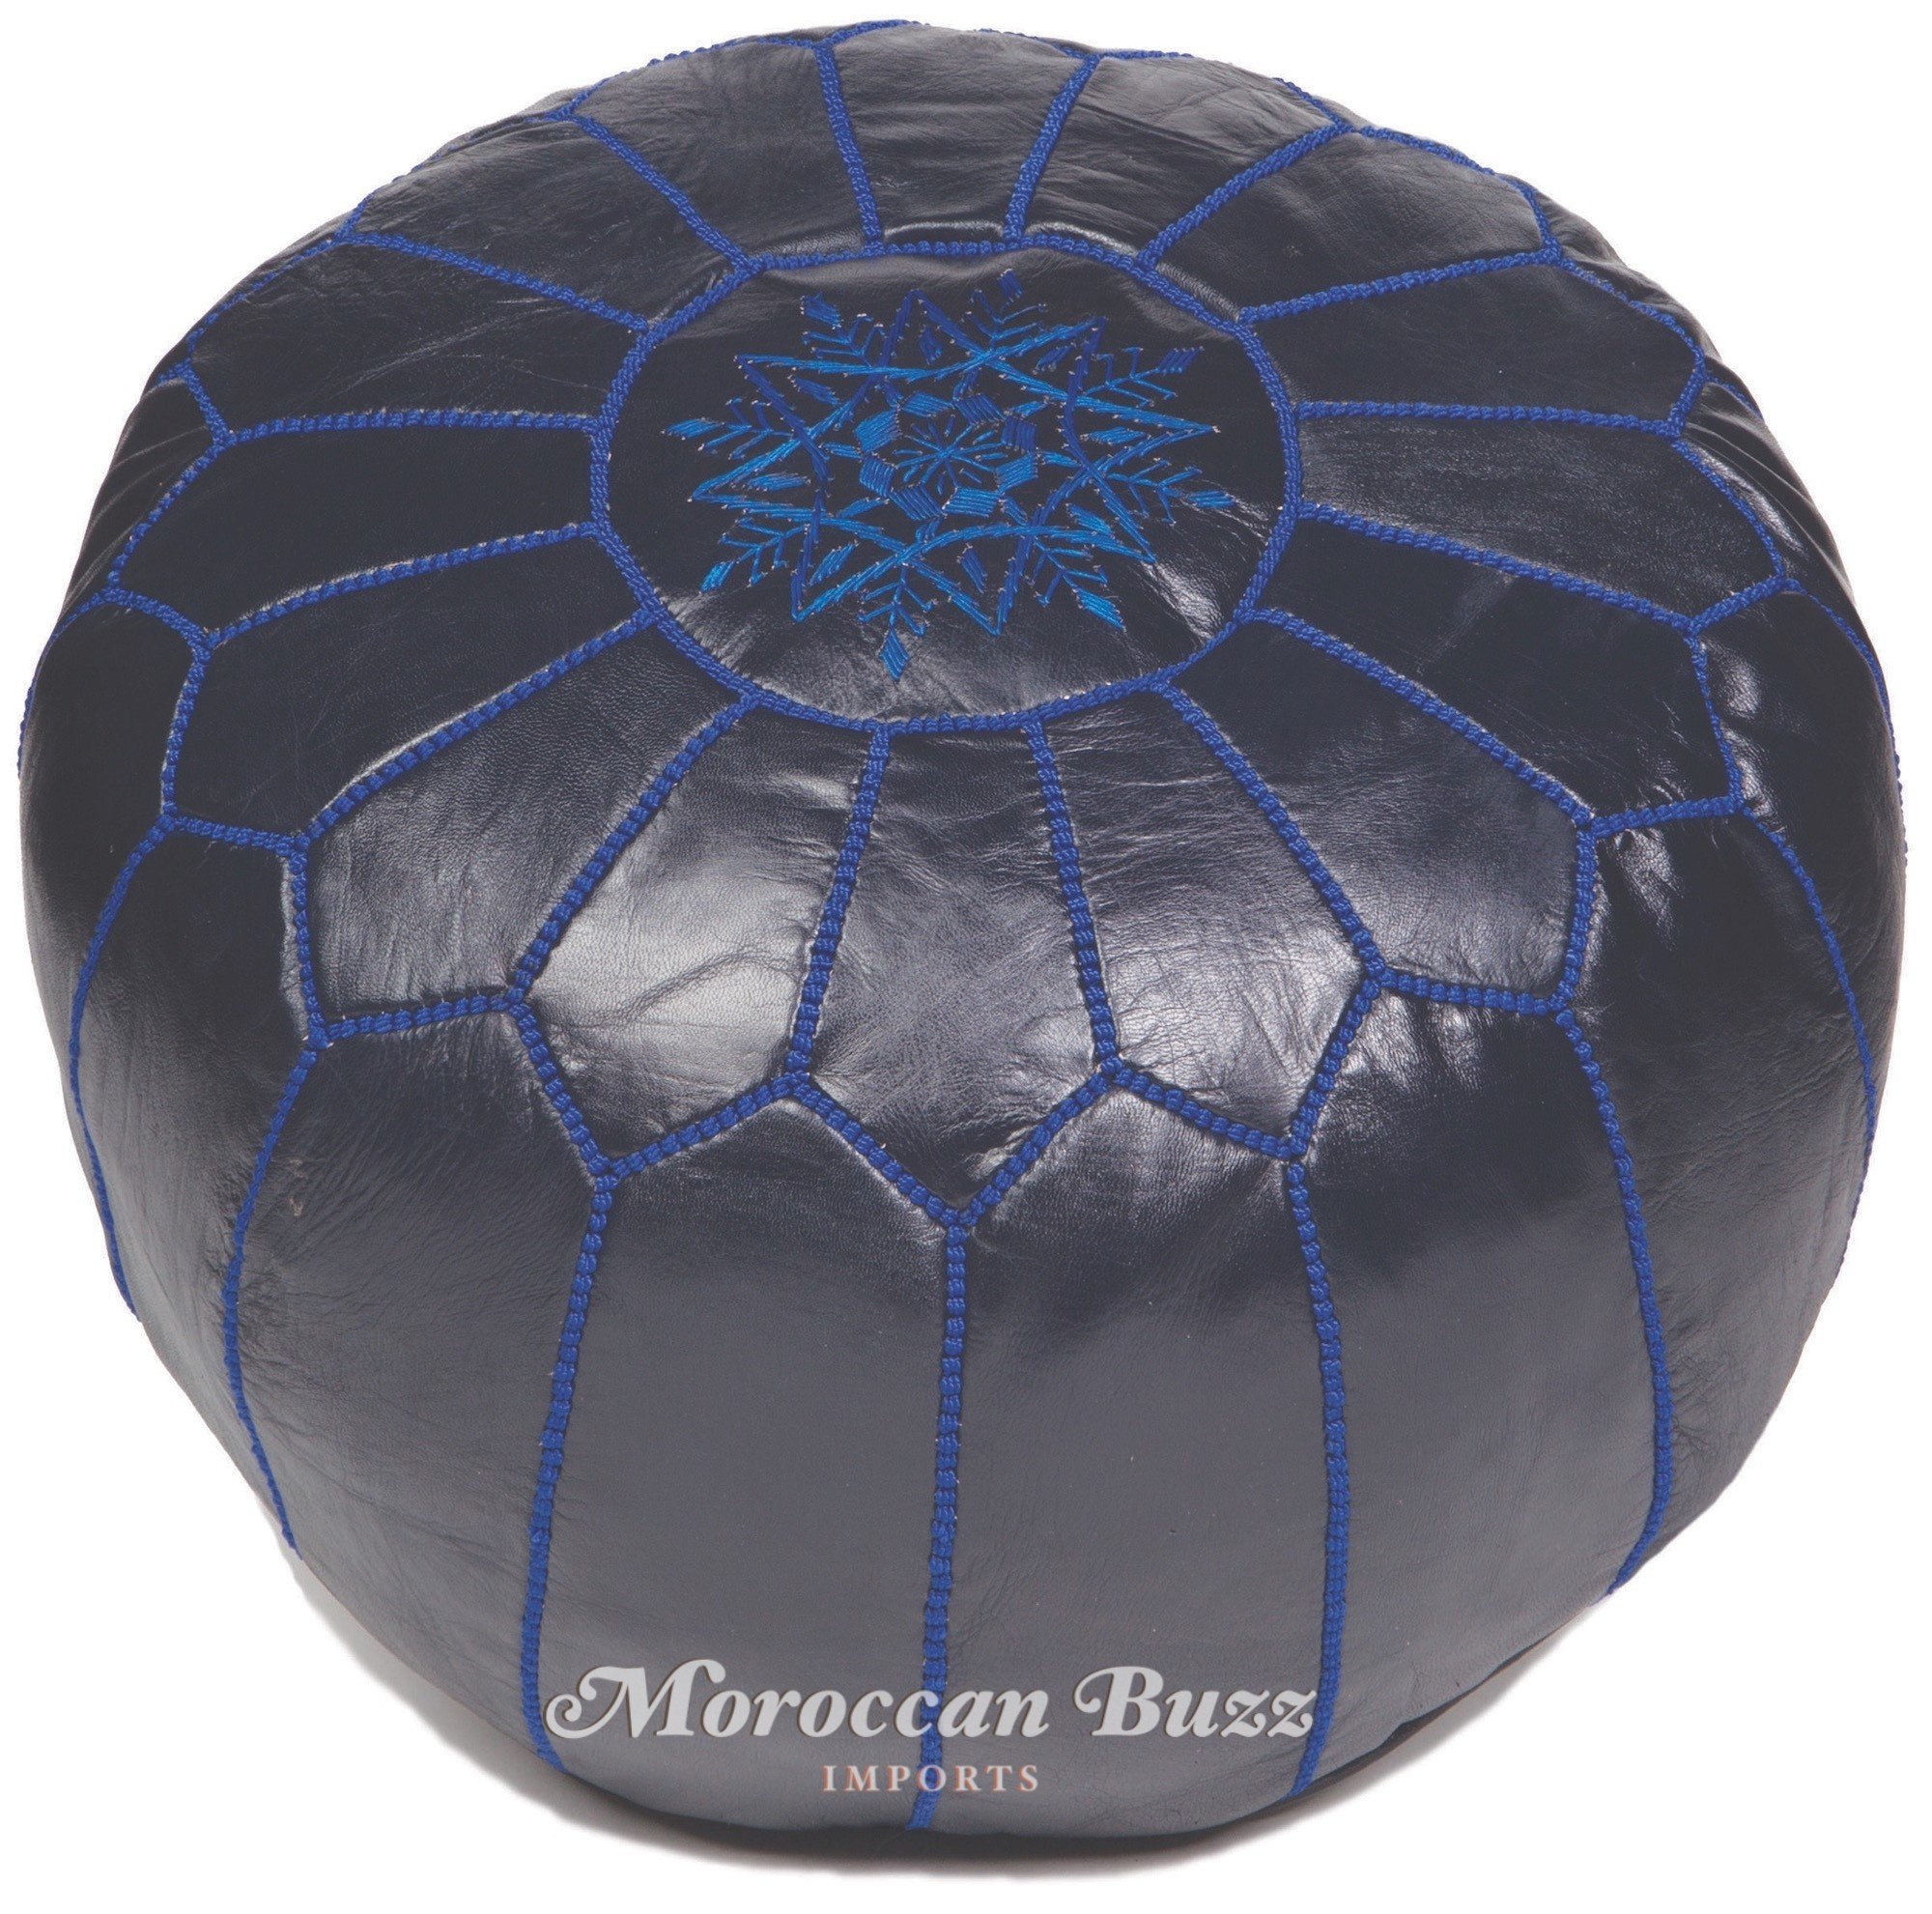 Moroccan Buzz Premium Leather Pouf Ottoman Cover, Navy Blue (UNSTUFFED Pouf)